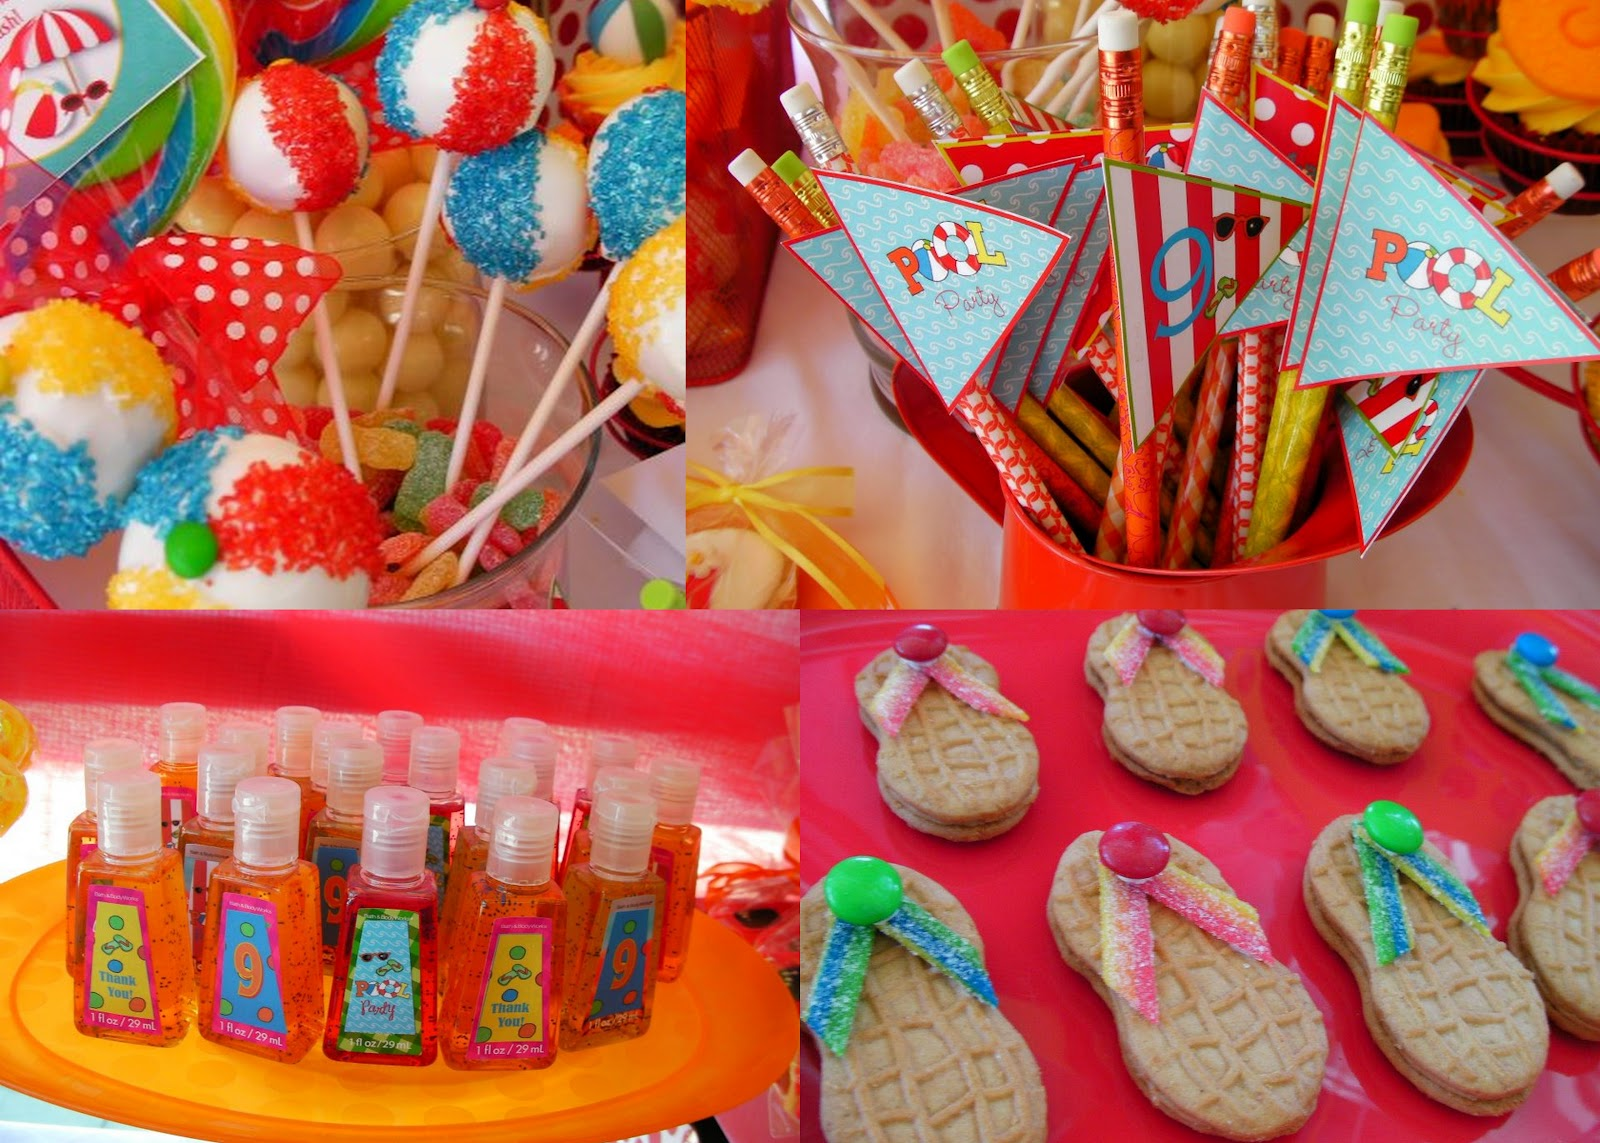 Pool Party Food Ideas For Teenagers 23 super cool pool party ideas for teens Beach Themed First Birthday Parties Boy Beach And Pool Party Inspiration Blowout Party Making Parties Birthday Ideas Pinterest Birthday Party